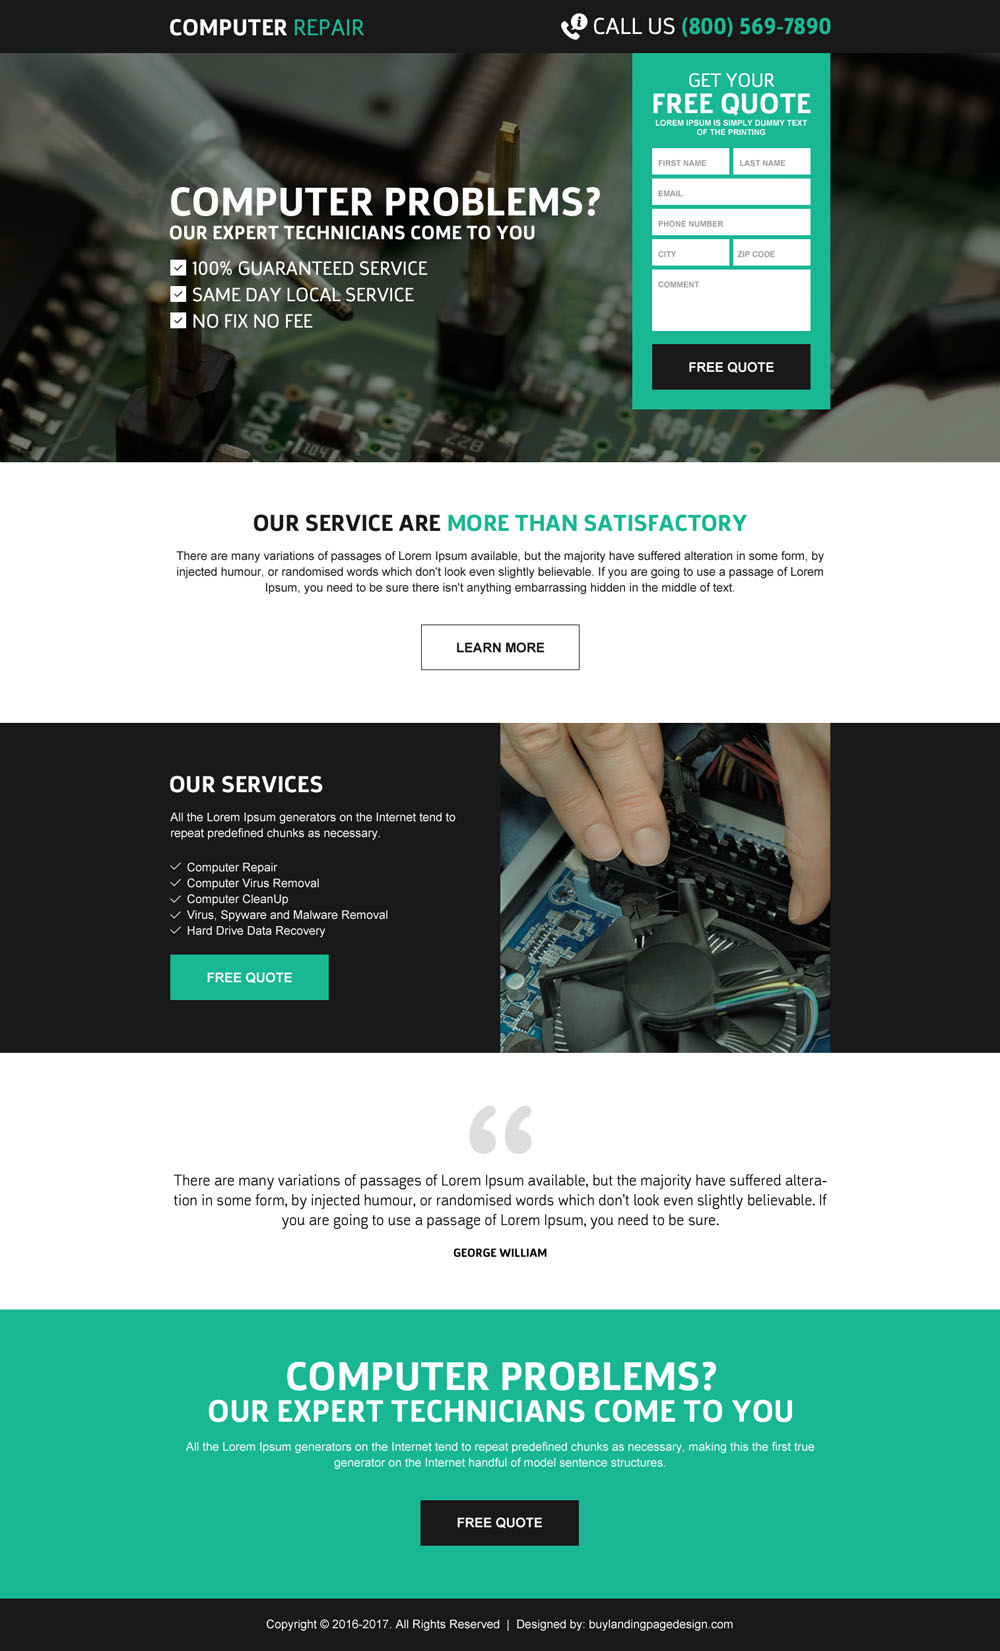 Responsive computer repair landing page design templates for Lead capture page templates free